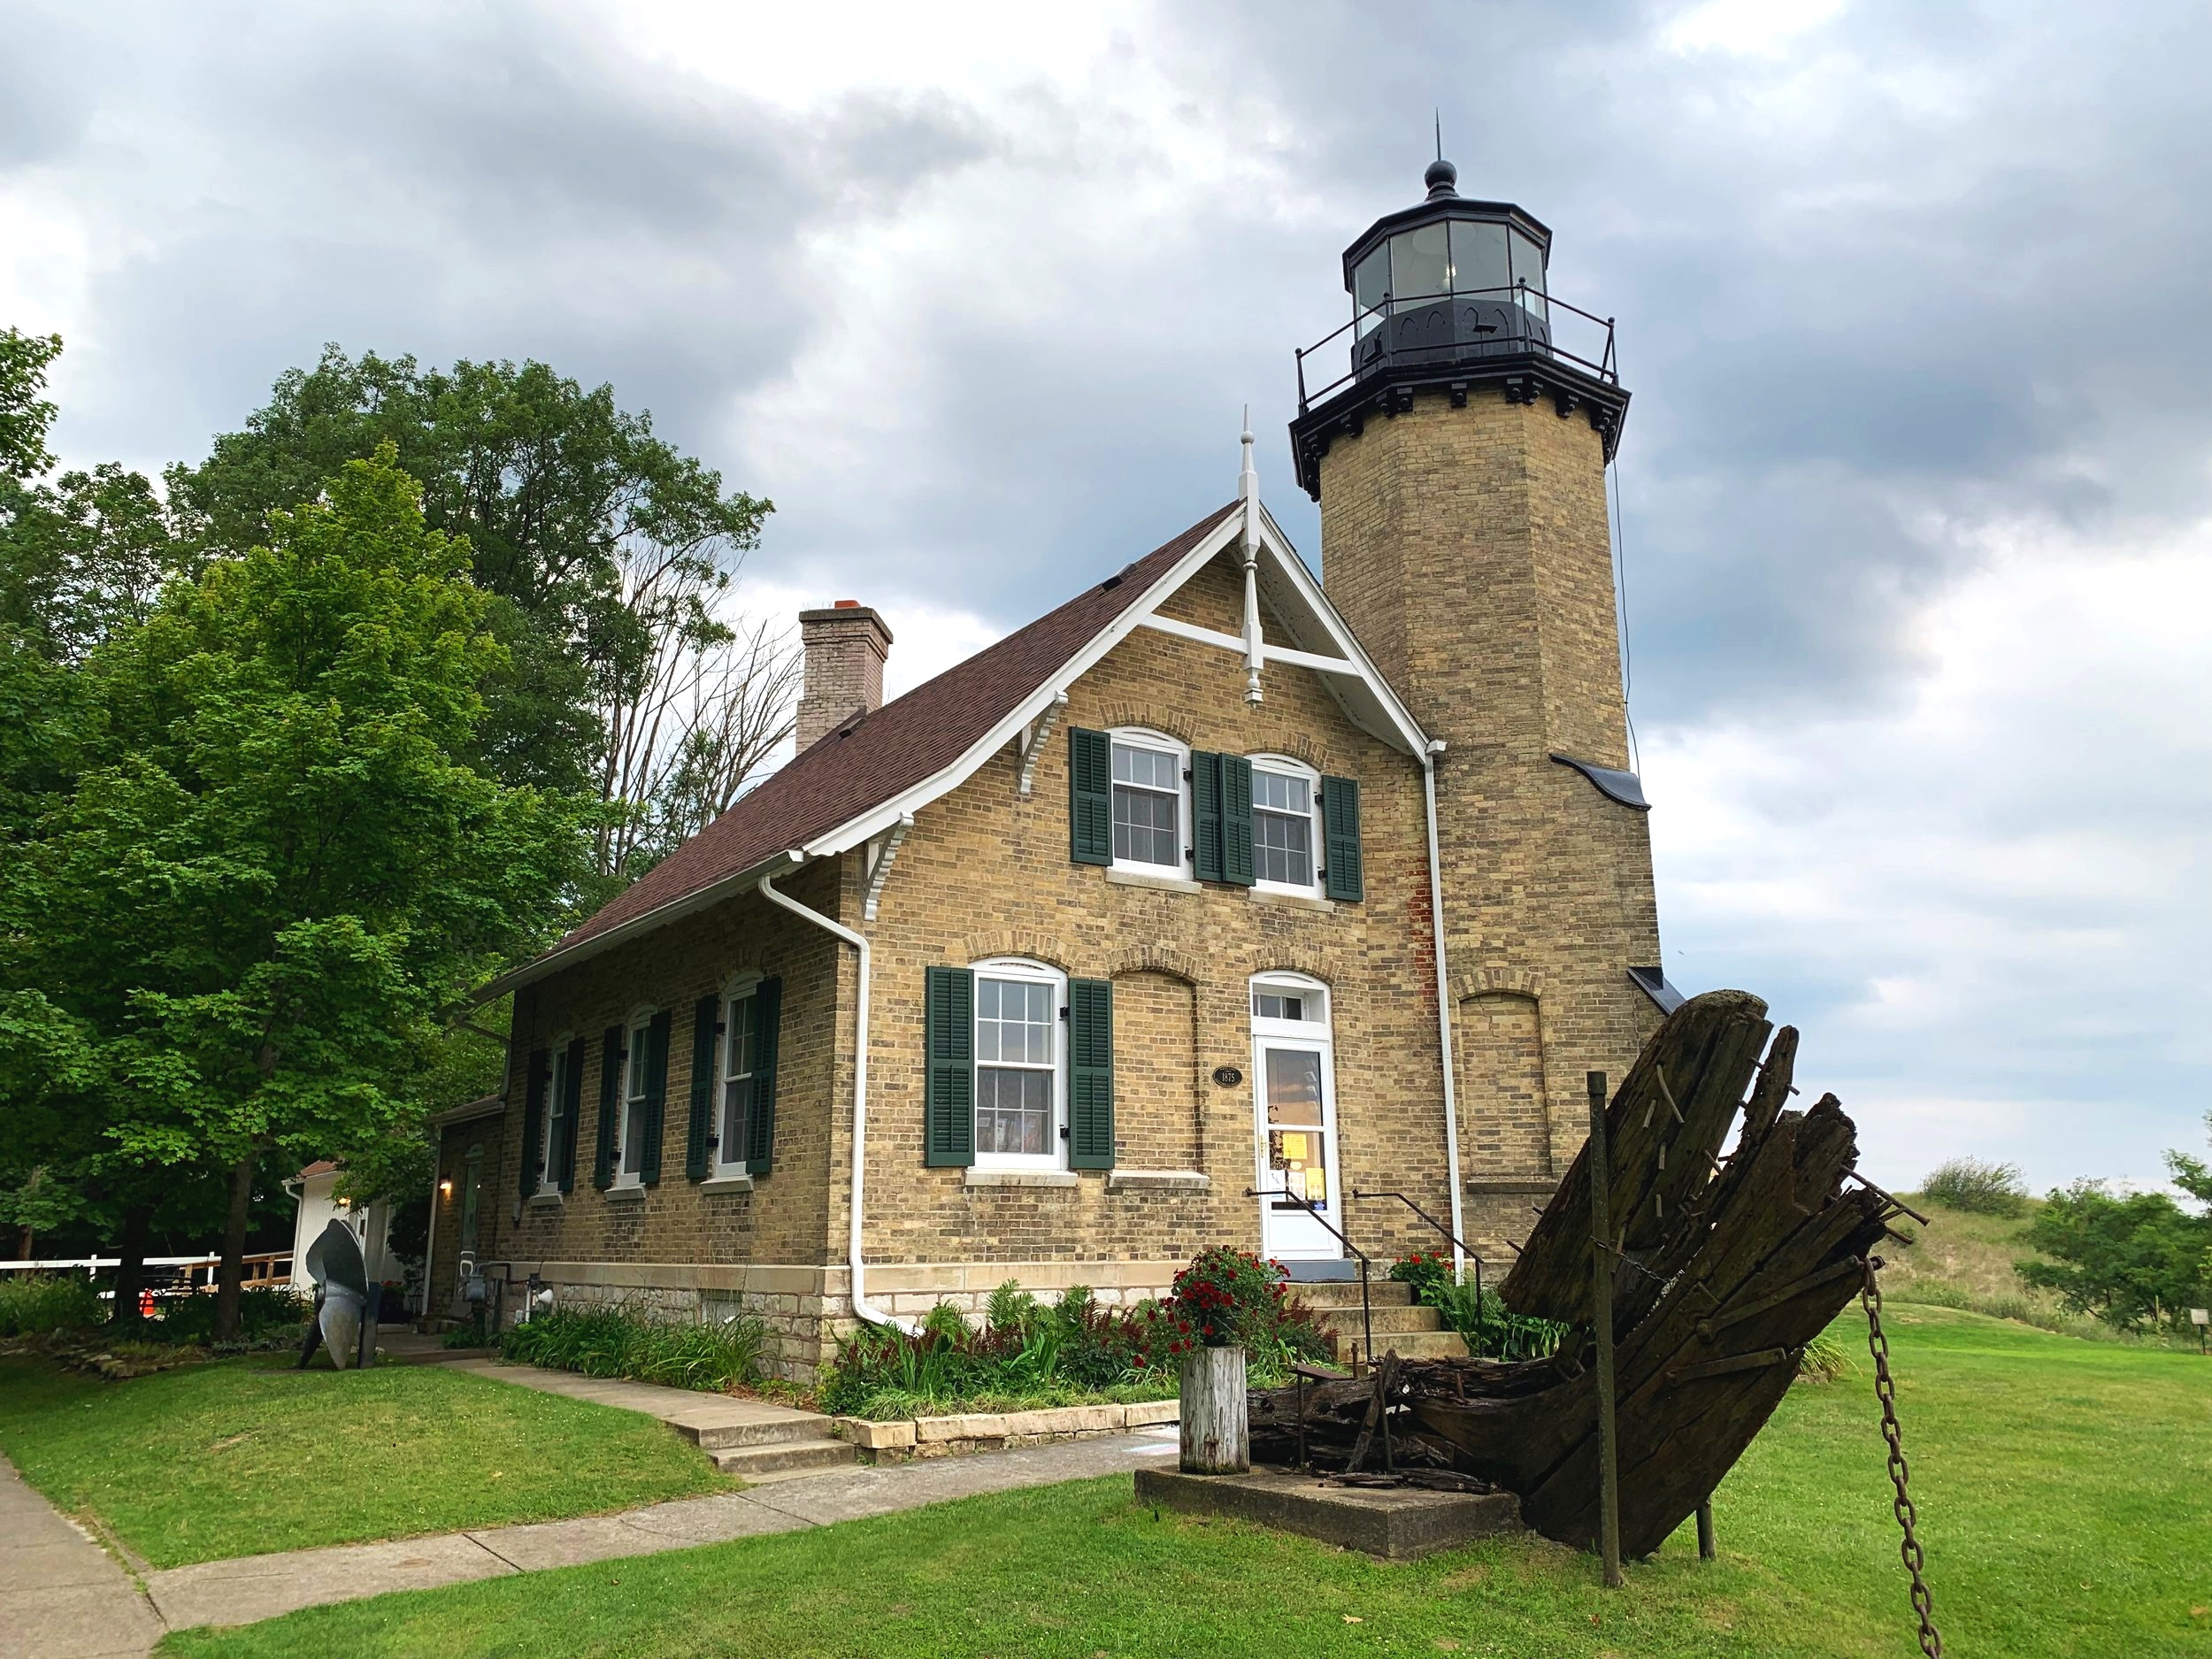 The White River Light Station & Museum sits on the very western end of White Lake in Fruitland Township